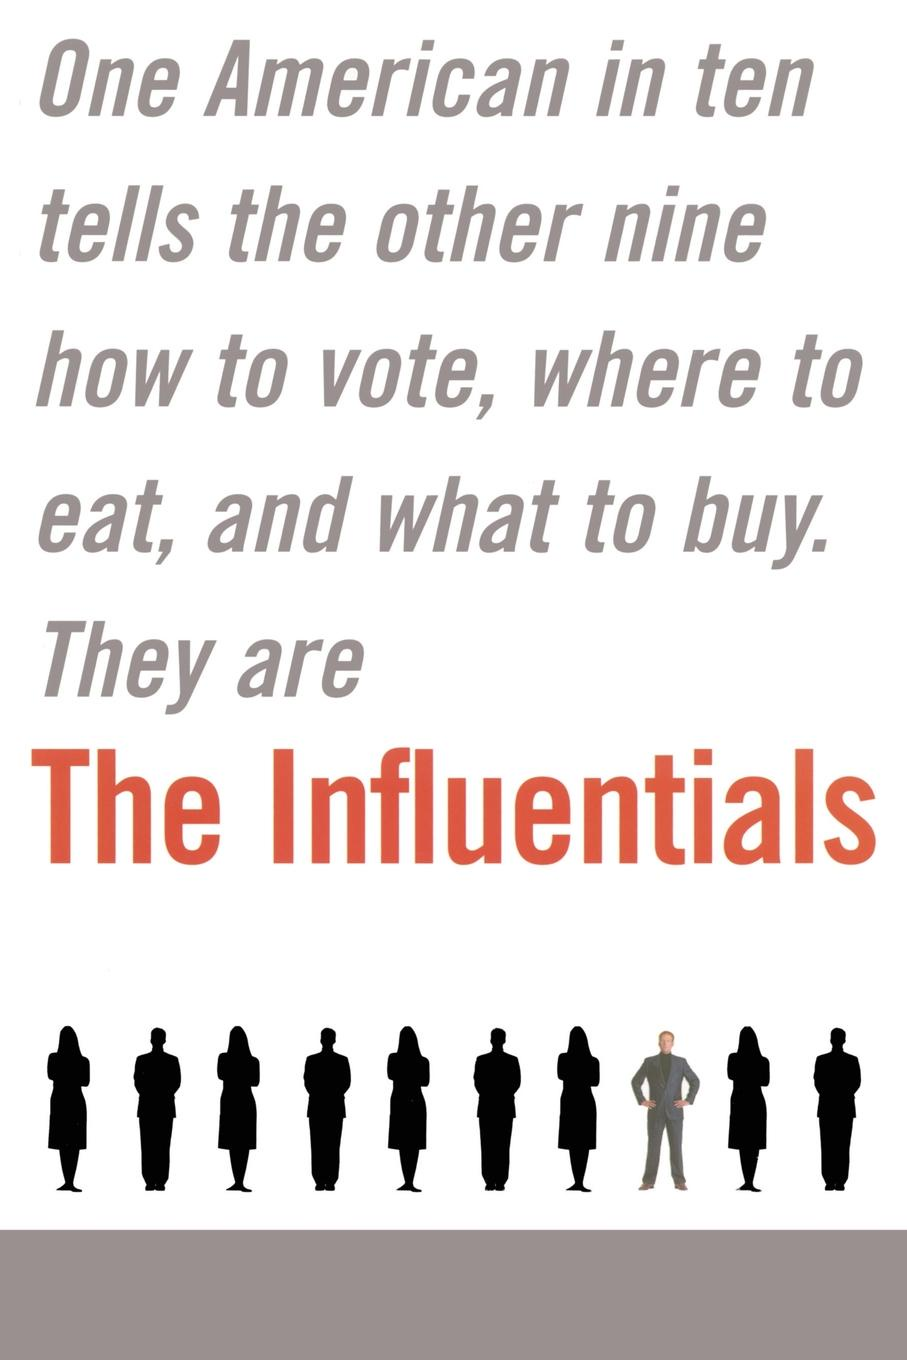 Edward B. Keller The Influentials. One American in Ten Tells the Other Nine How to Vote, Where to Eat, and What to Buy hidden dangers in what we eat and drink